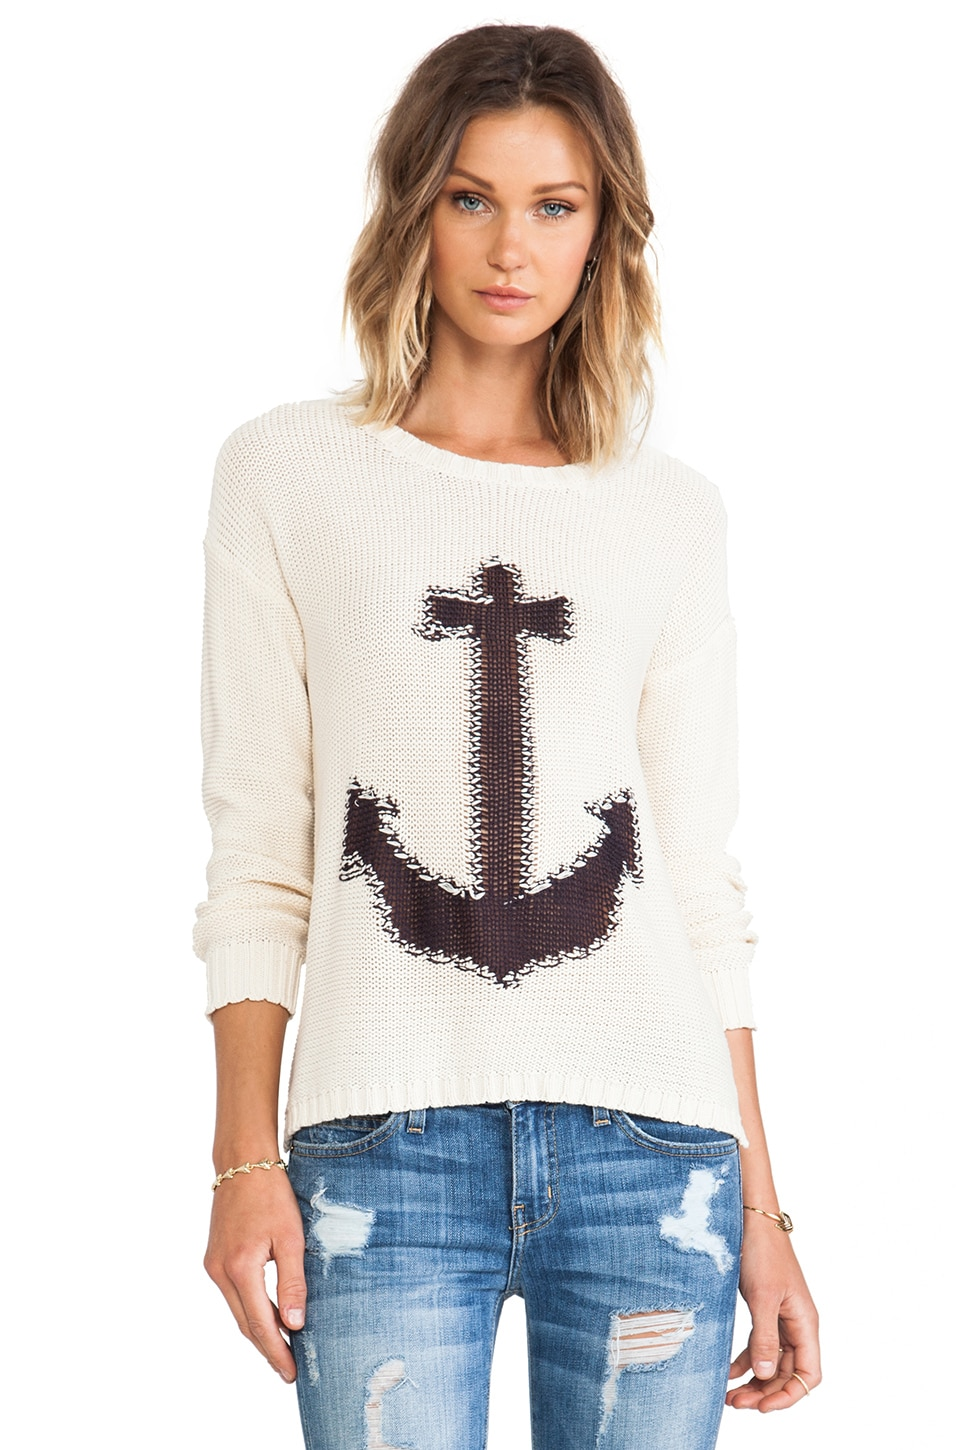 Surf Gypsy Anchor Sweater in Ivory & Navy